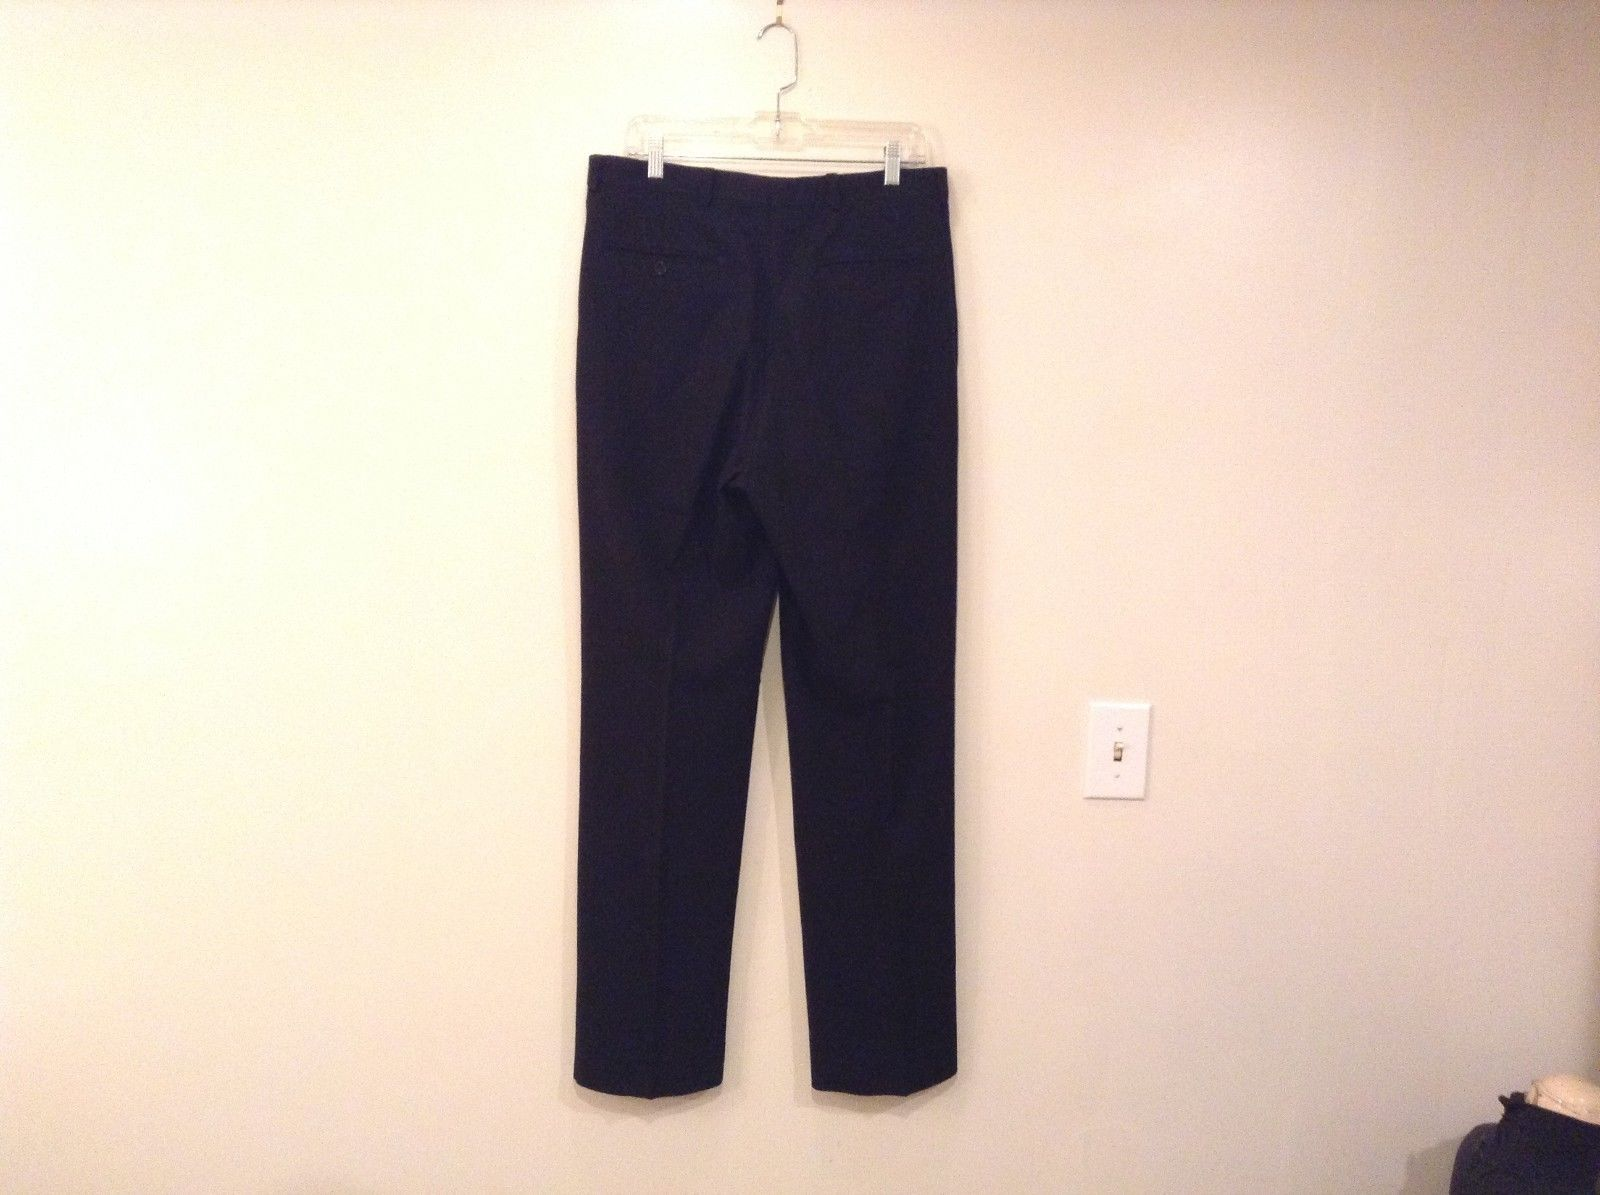 Black Wool Giorgio Armani Le Collection Black Dress Pants Size 34 Made in Italy